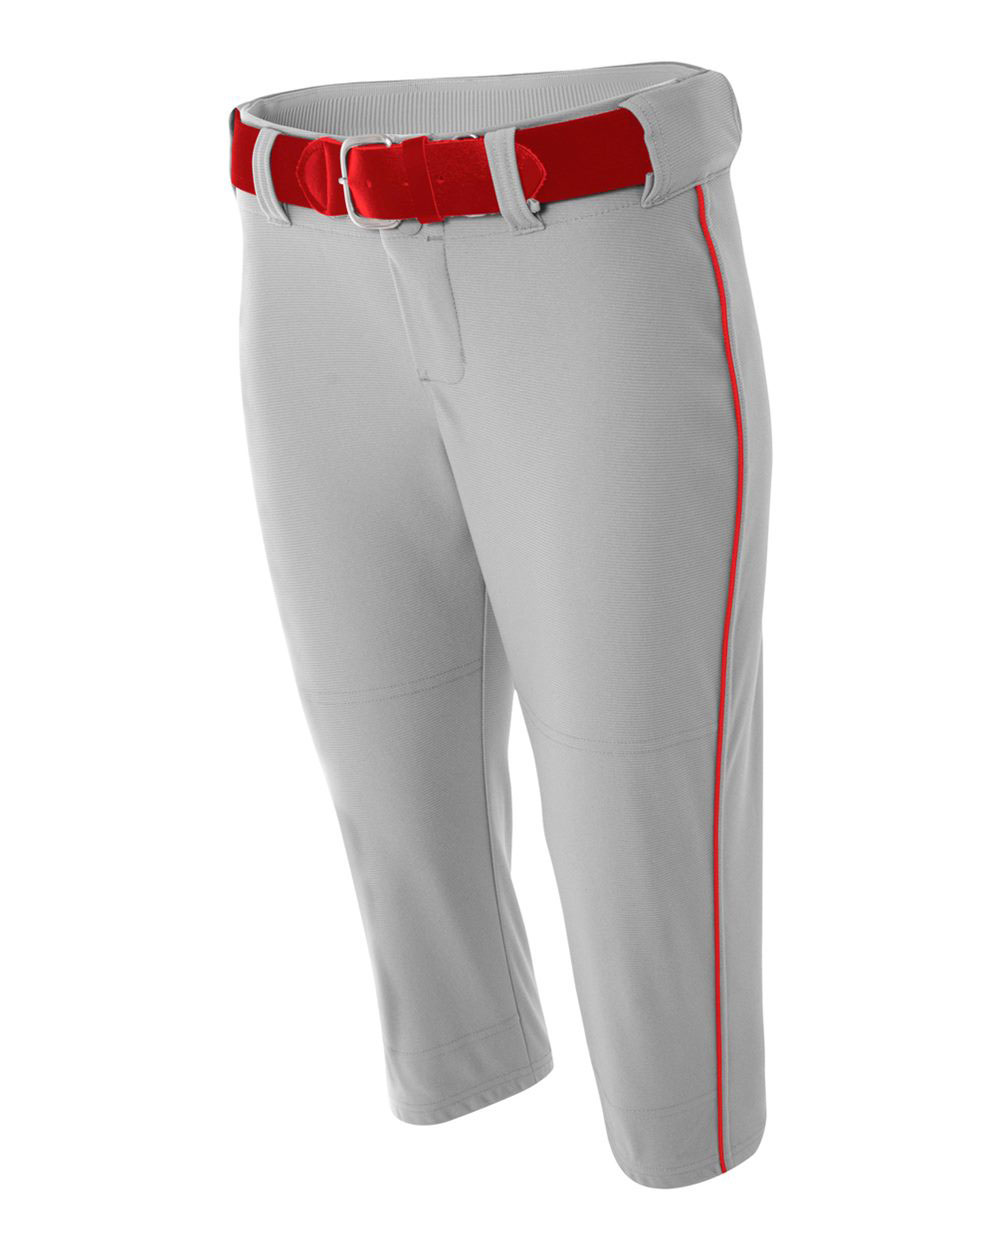 Womens Softball Pant with Cording